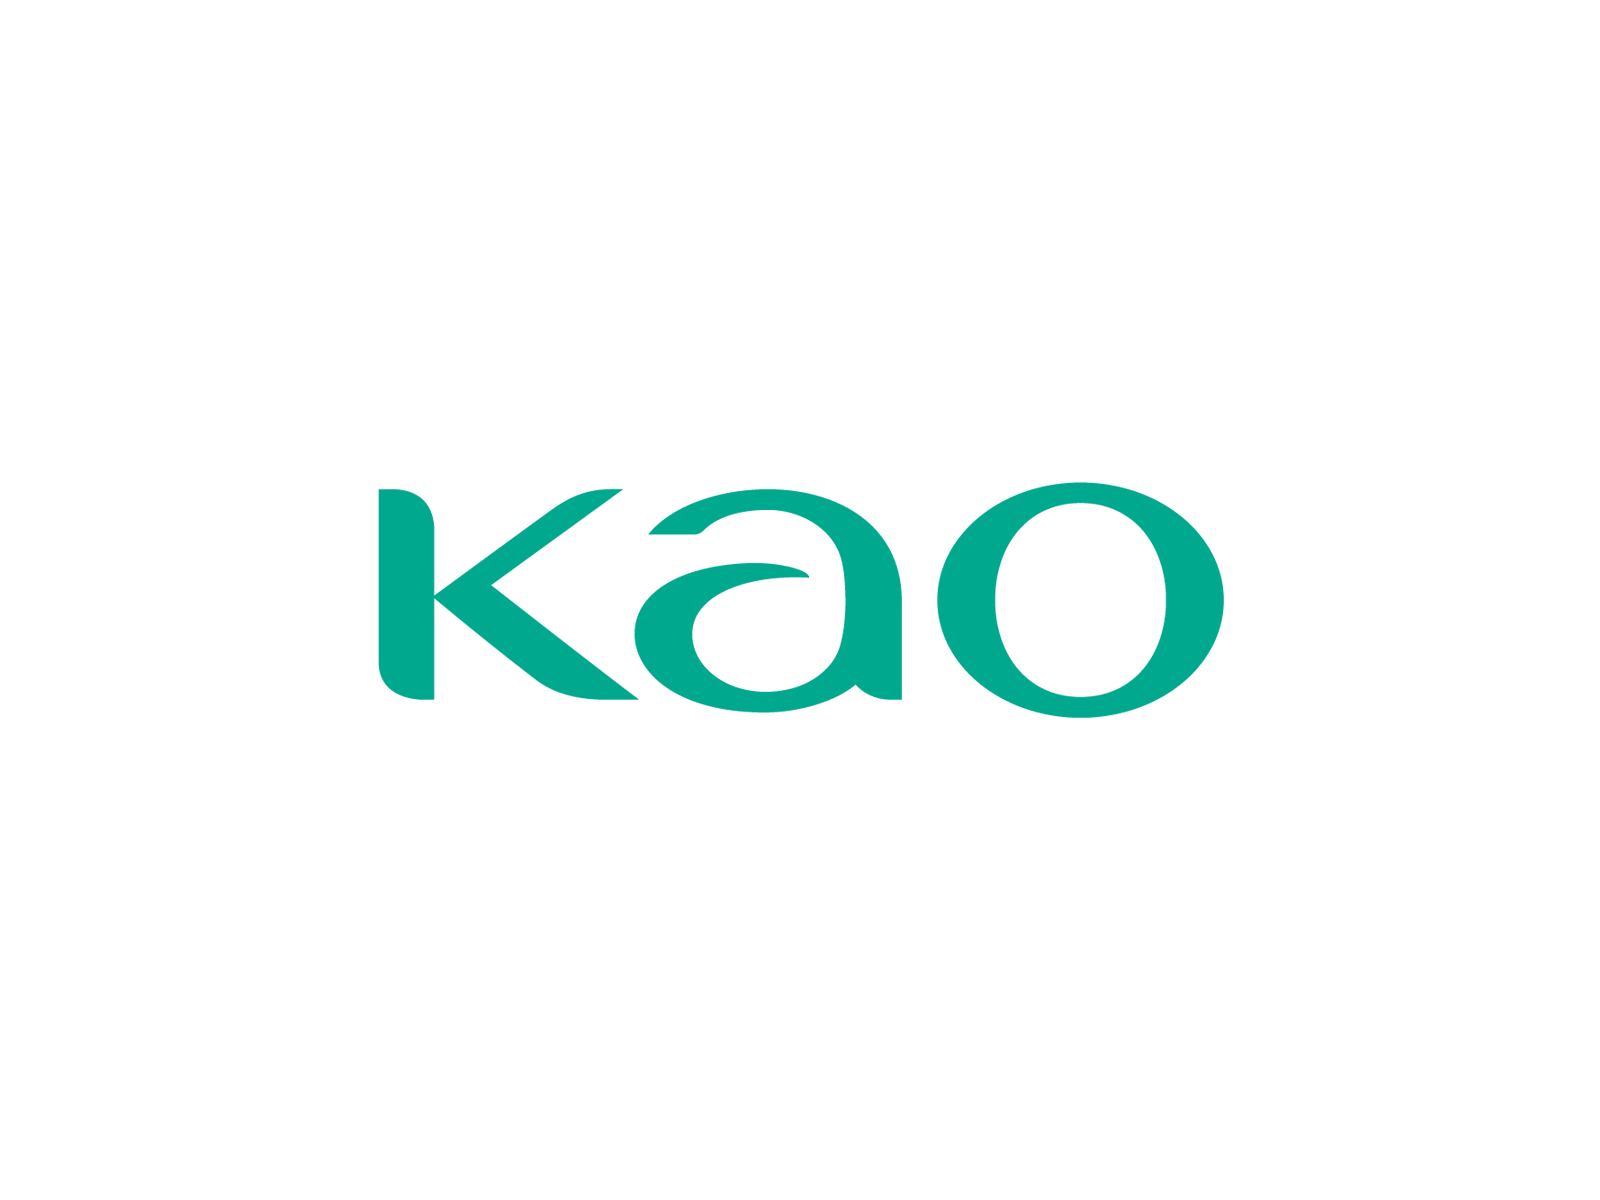 kao brand Qoo10 - 「kao」 - brand search results : at qoo10 you will get local, and imported products at shockingly low prices use discount coupons and a variety of events.